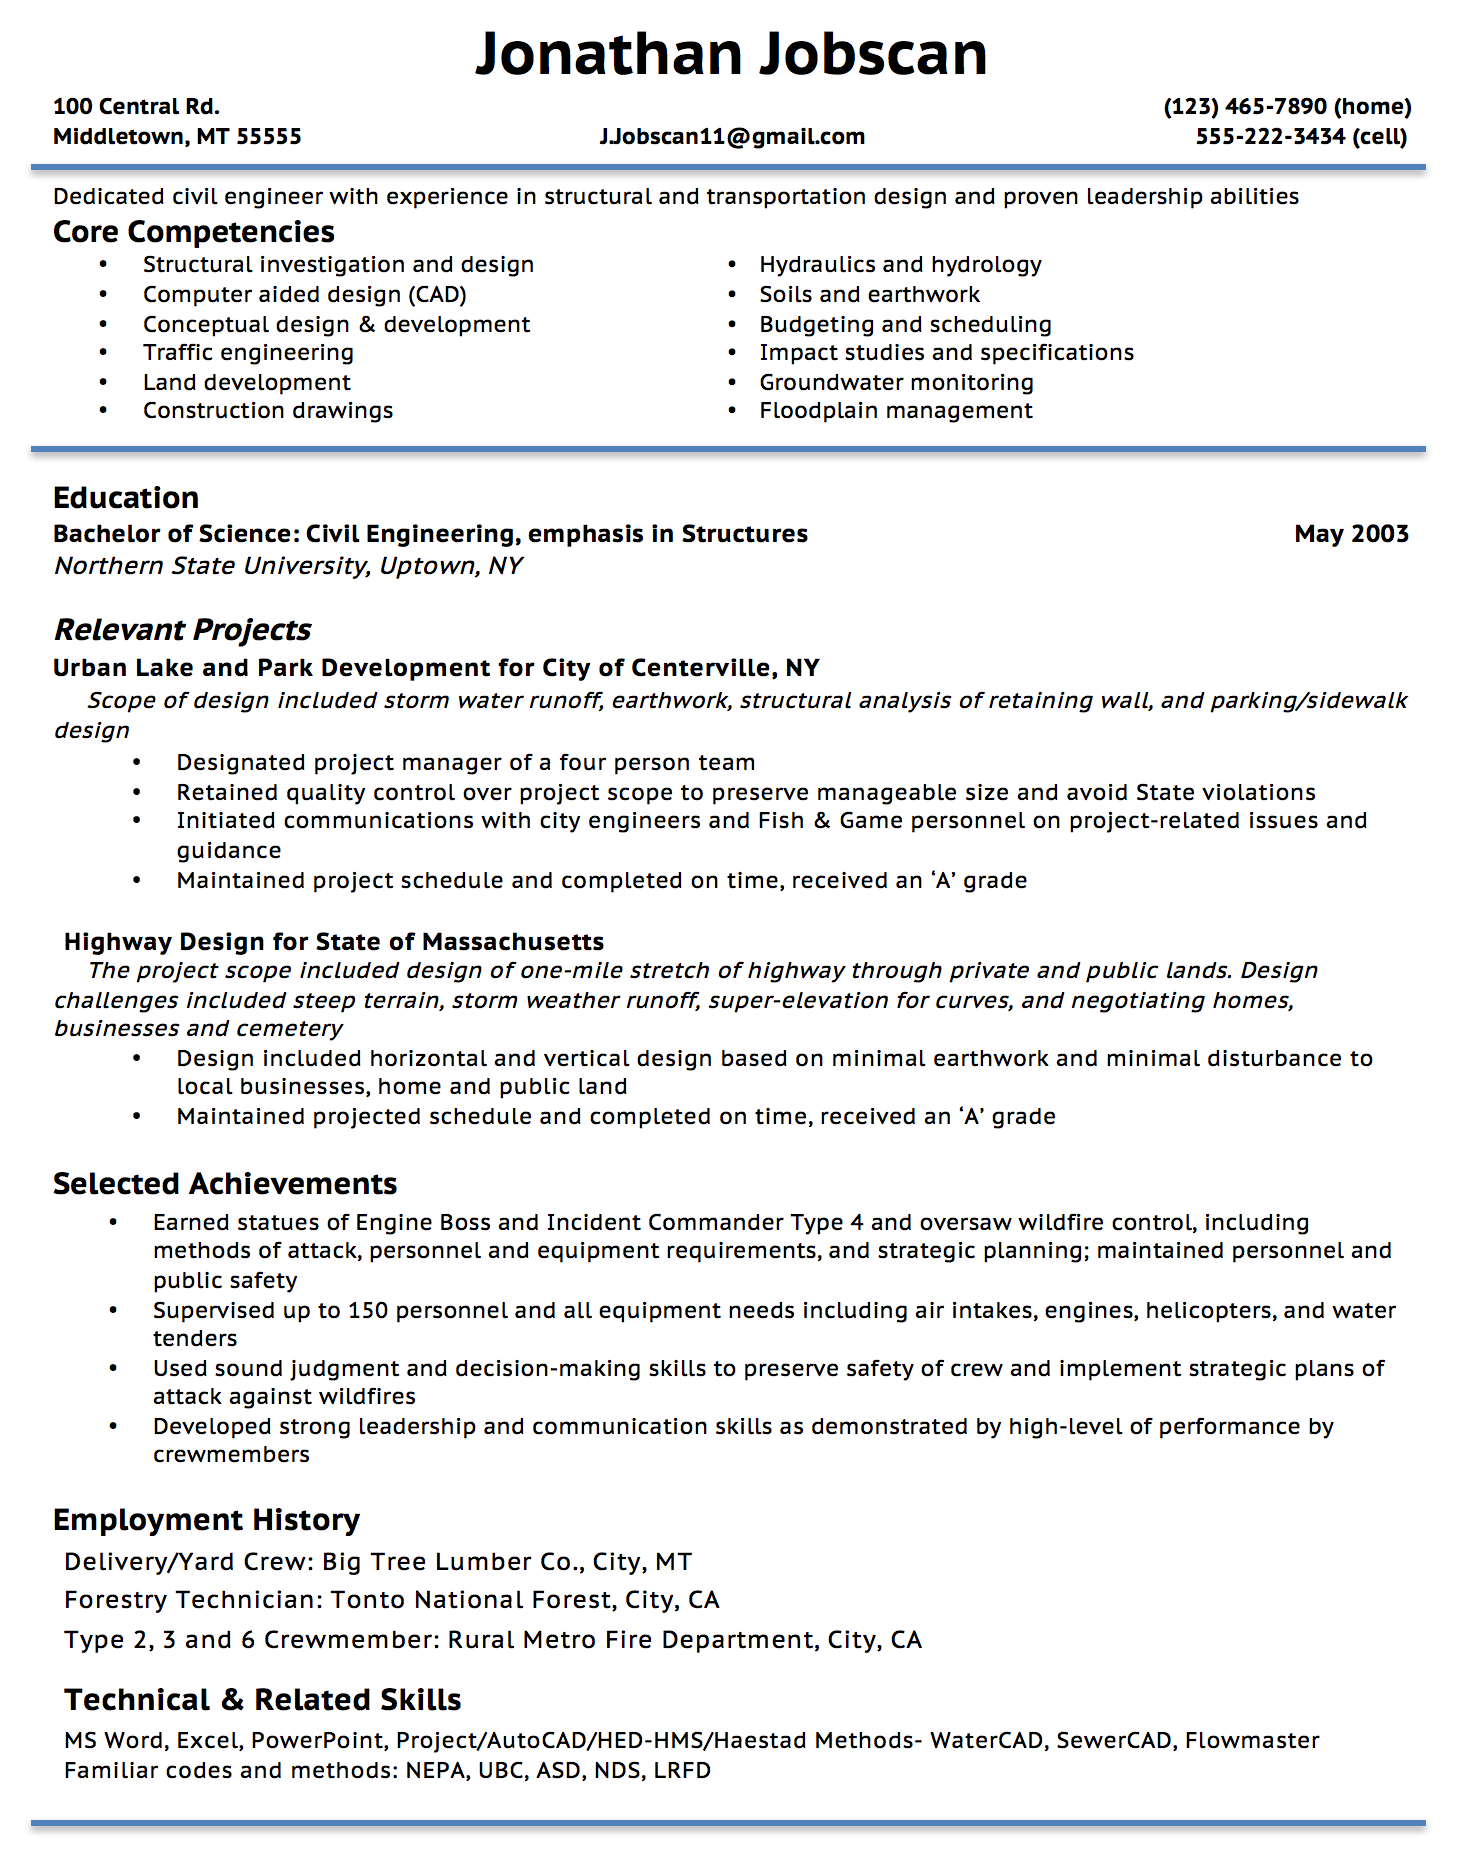 Opposenewapstandardsus  Ravishing Resume Writing Guide  Jobscan With Magnificent Example Of A Functional Resume Format With Archaic Absolutely Free Resume Templates Also Production Planner Resume In Addition Criminal Justice Resumes And Resume For Hospital Job As Well As Resume With Photo Template Additionally Court Reporter Resume From Jobscanco With Opposenewapstandardsus  Magnificent Resume Writing Guide  Jobscan With Archaic Example Of A Functional Resume Format And Ravishing Absolutely Free Resume Templates Also Production Planner Resume In Addition Criminal Justice Resumes From Jobscanco